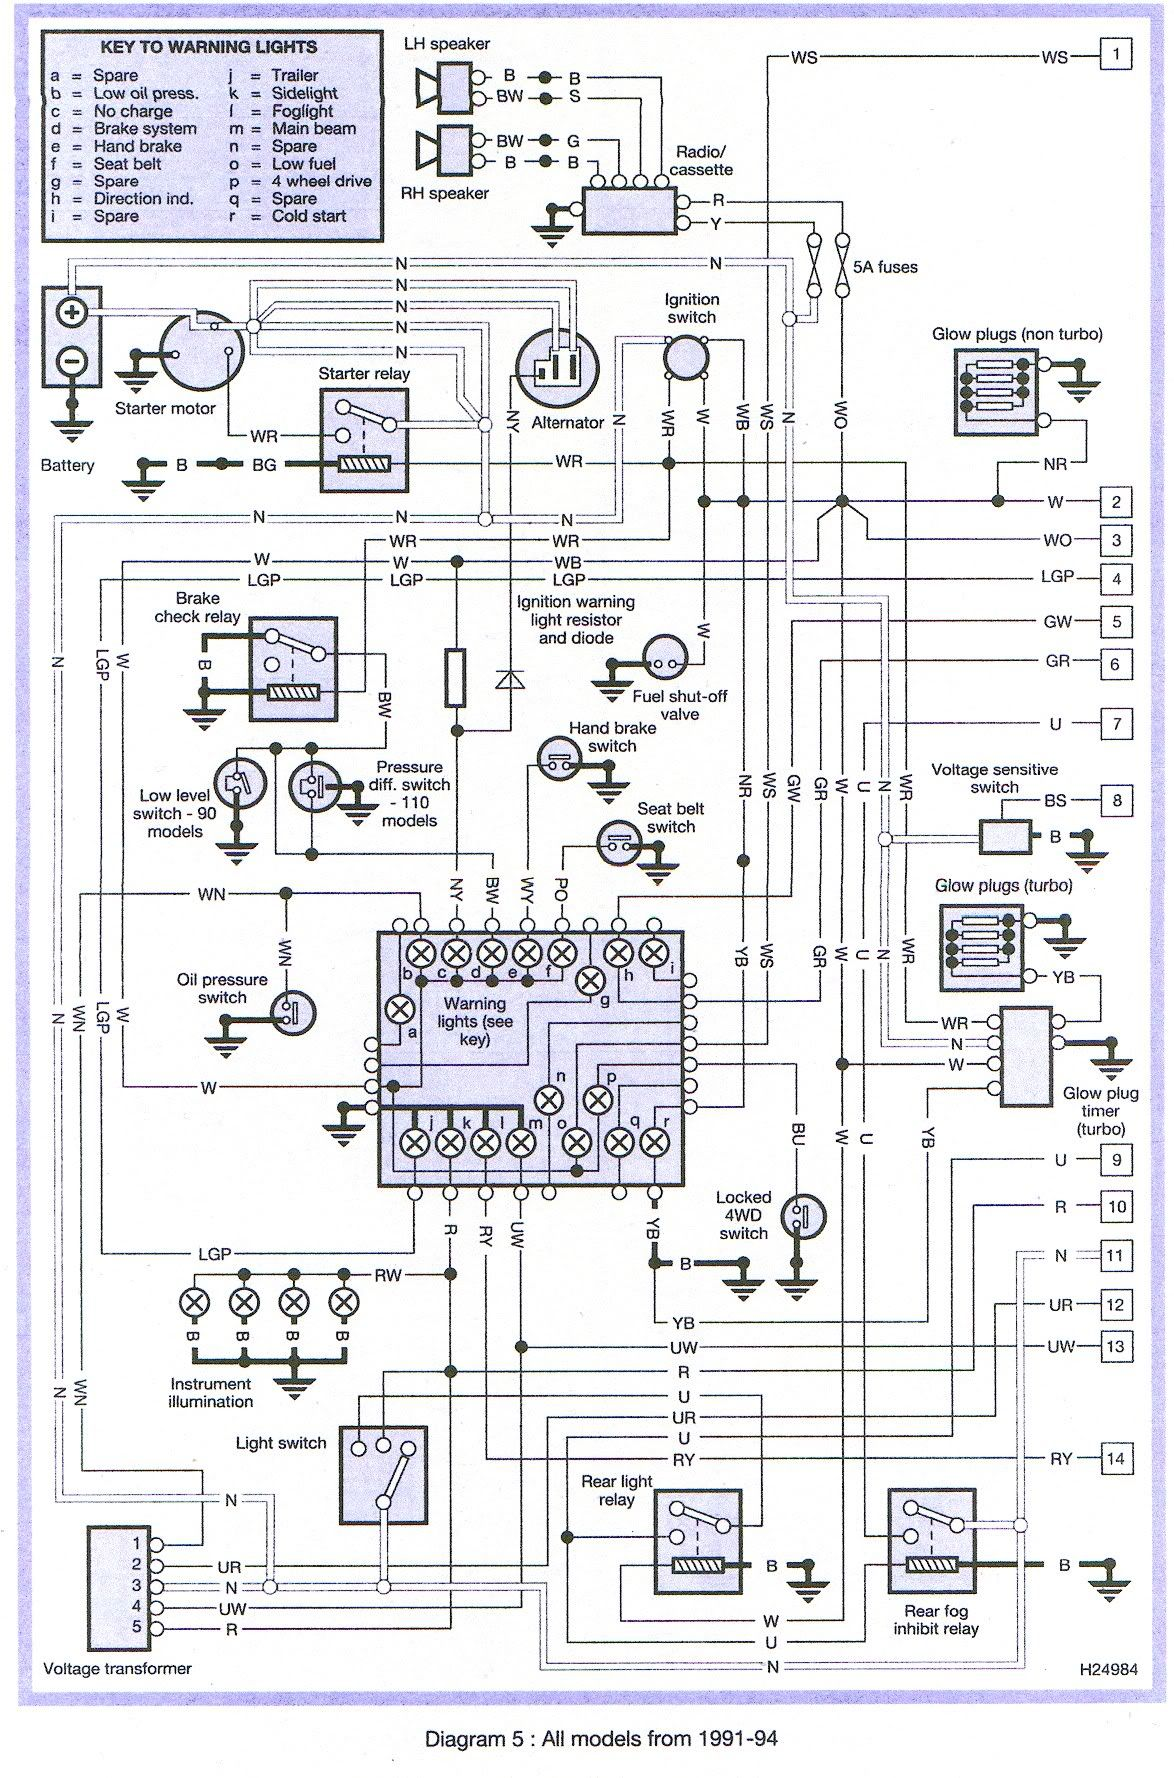 Land Rover Discovery Wiring Diagram | Manual Repair With Engine Schematics  | Land rover discovery, Diagram, Land roverPinterest